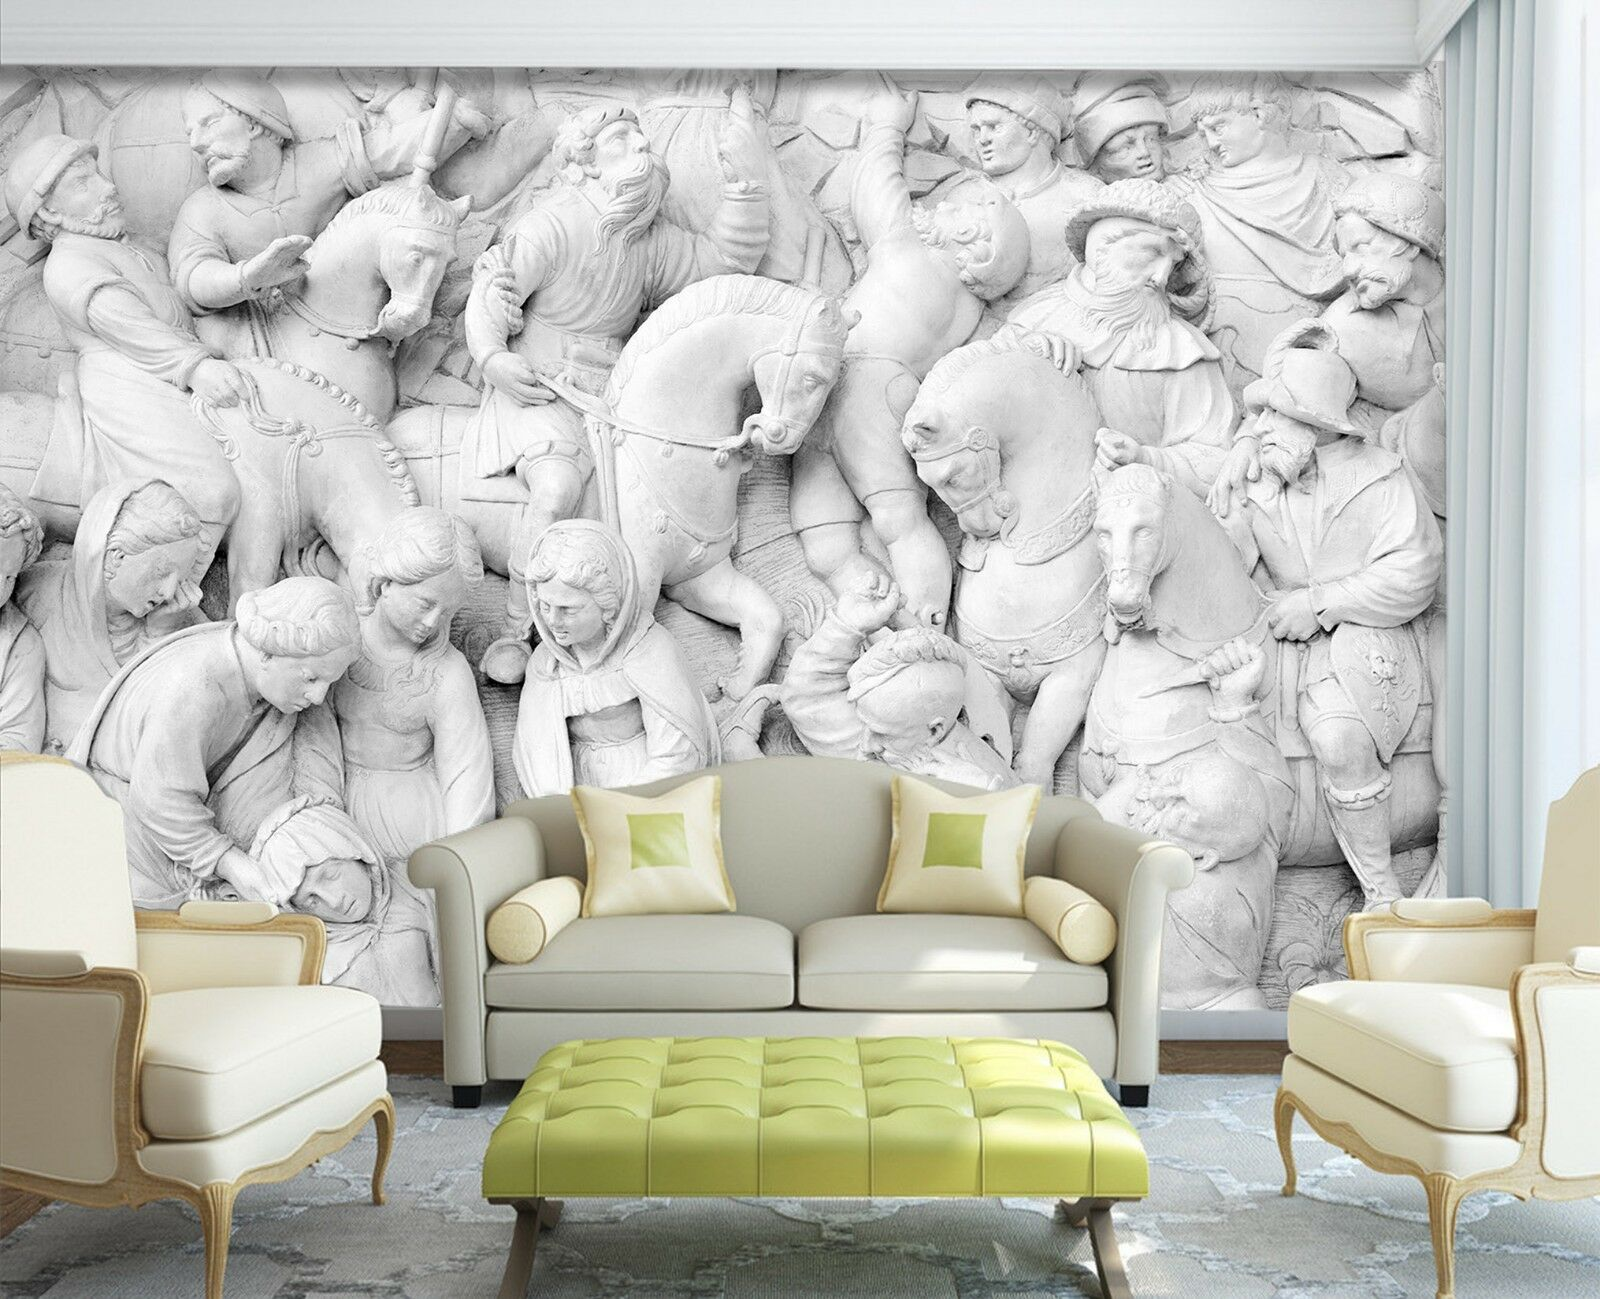 3D Weiß Sculpture Retro 5 Wall Paper wall Print Print Print Decal Wall Deco Indoor Mural eddeff